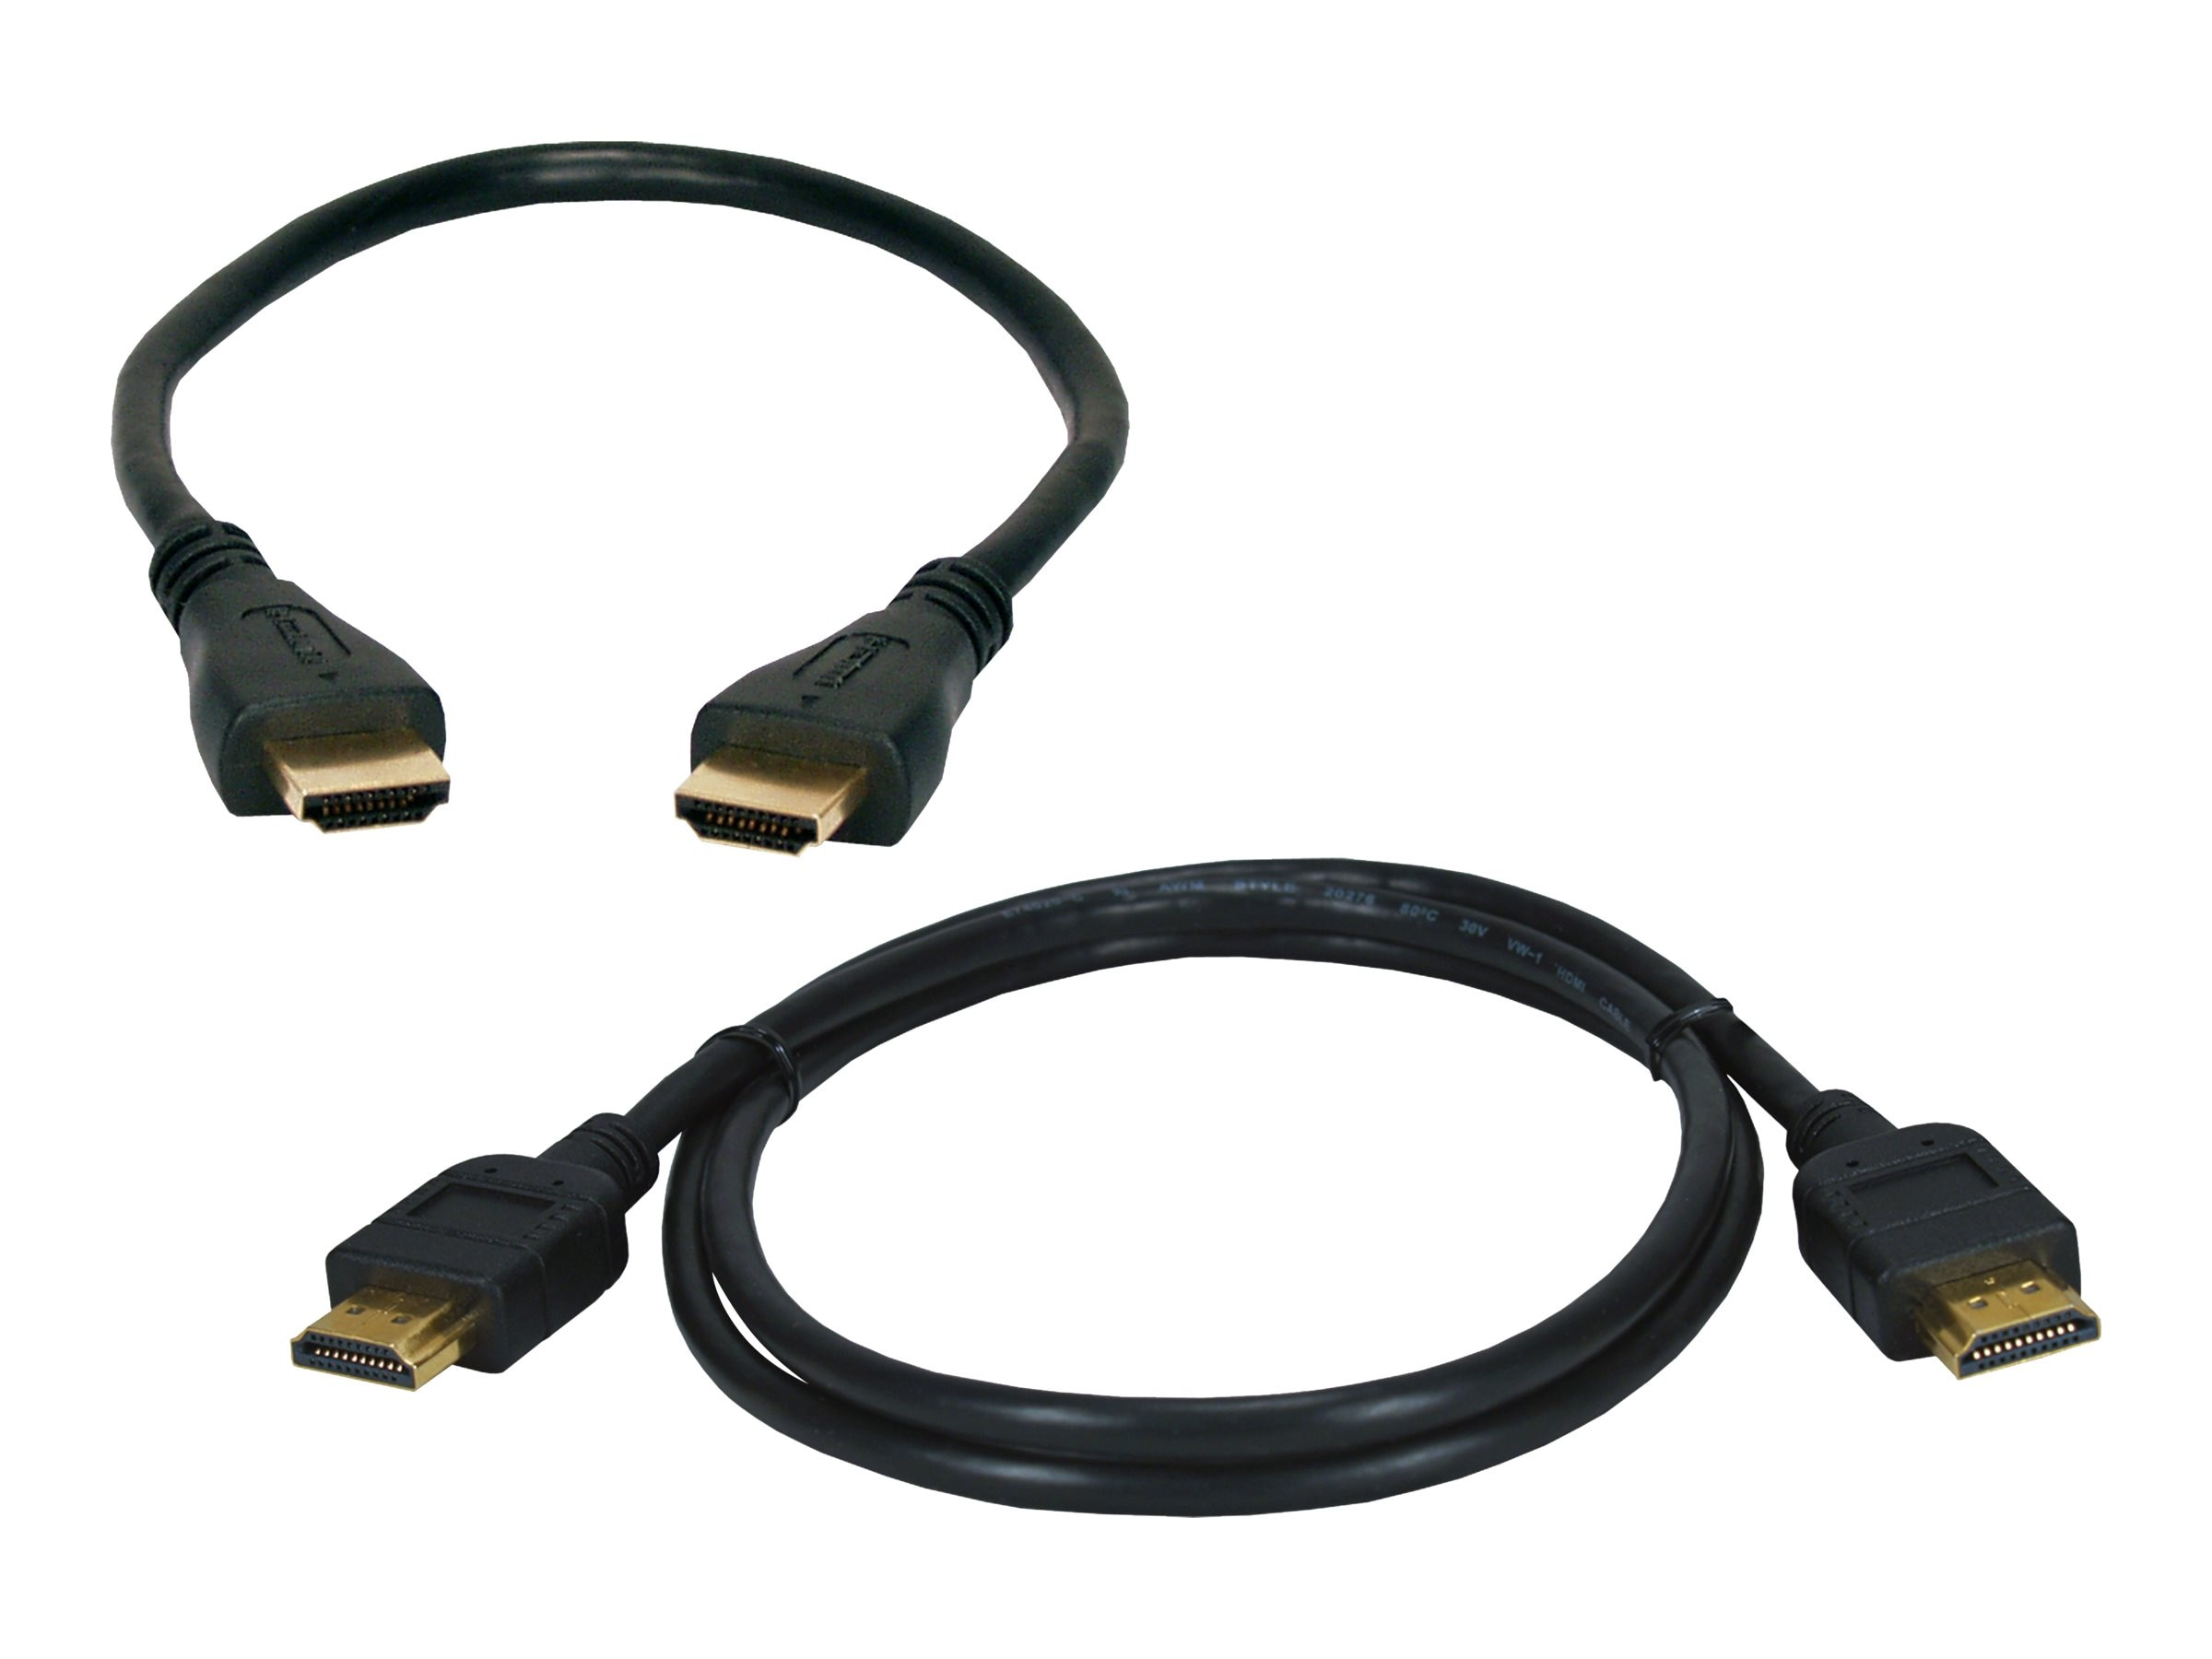 QVS High-Speed HDMI M M with Ethernet 4K Ultra HD Cable, Black, 1.5m and 3m, 2-Pack, HDG-K4